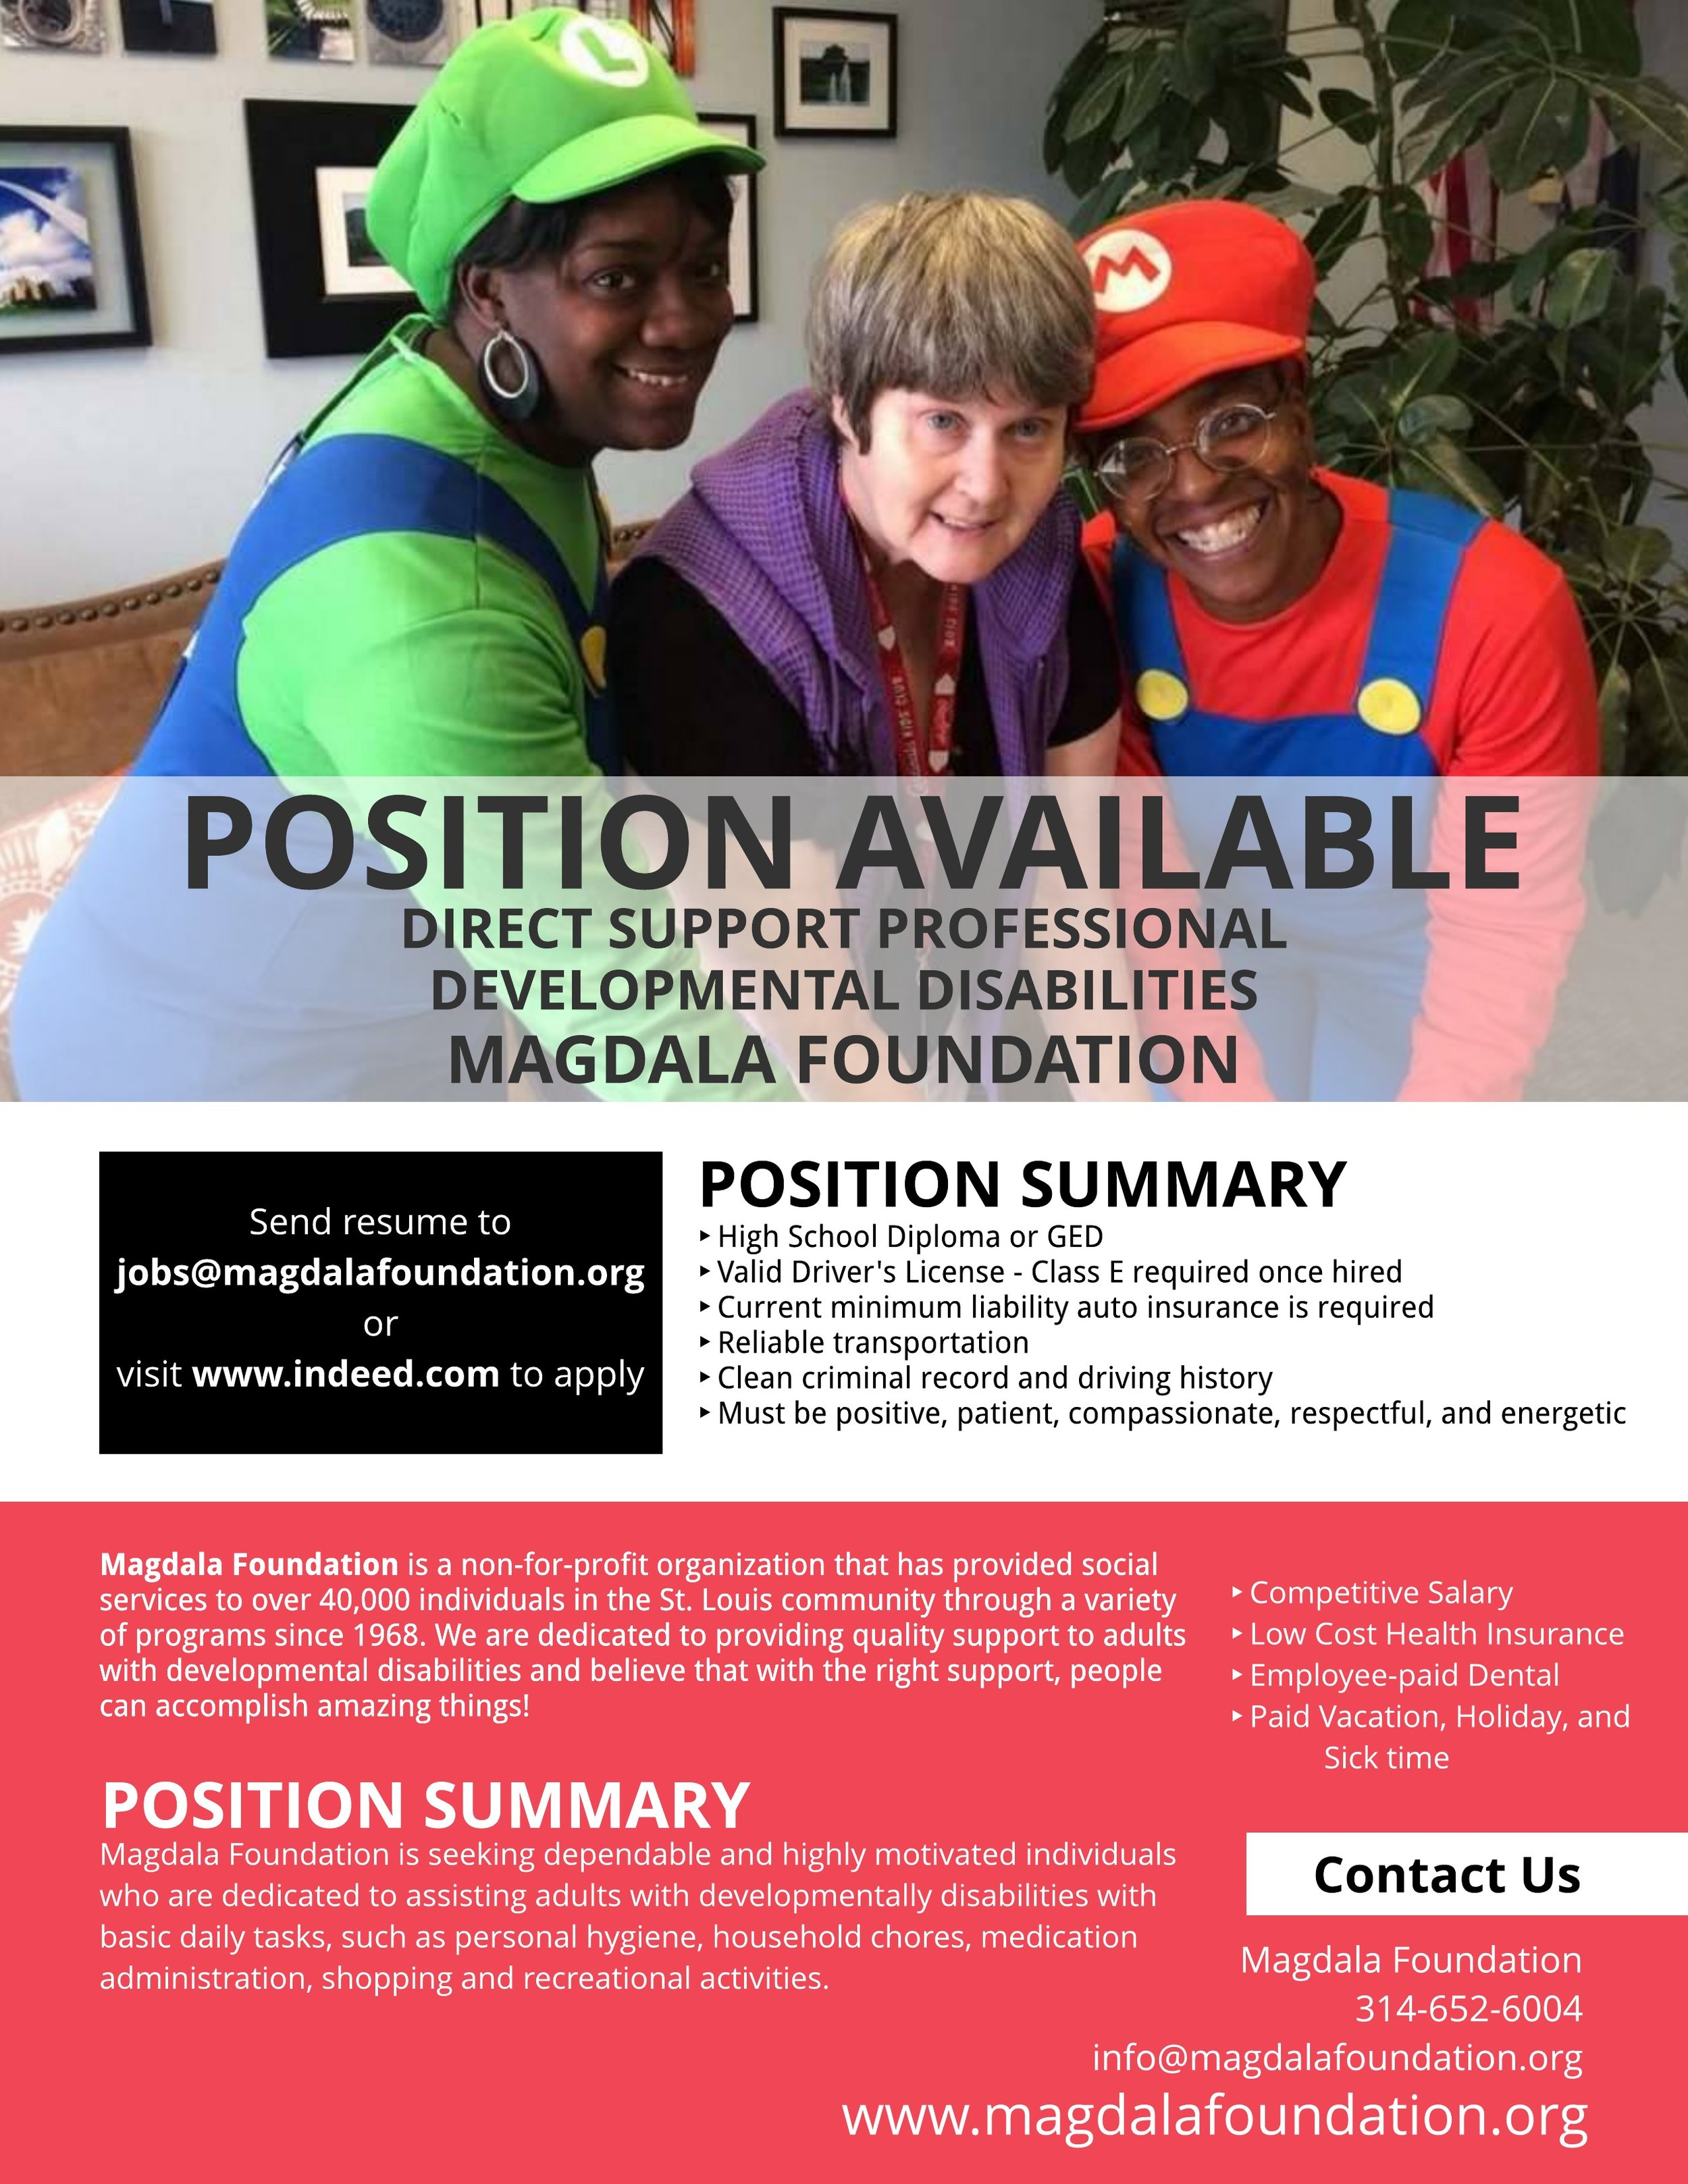 Direct Support Professionals - Magdala Foundation is seeking dependable and highly motivated individuals who are dedicated to assisting adults with developmentally disabilities with basic daily tasks, such as personal hygiene, household chores, medication administration, shopping and recreational activities.